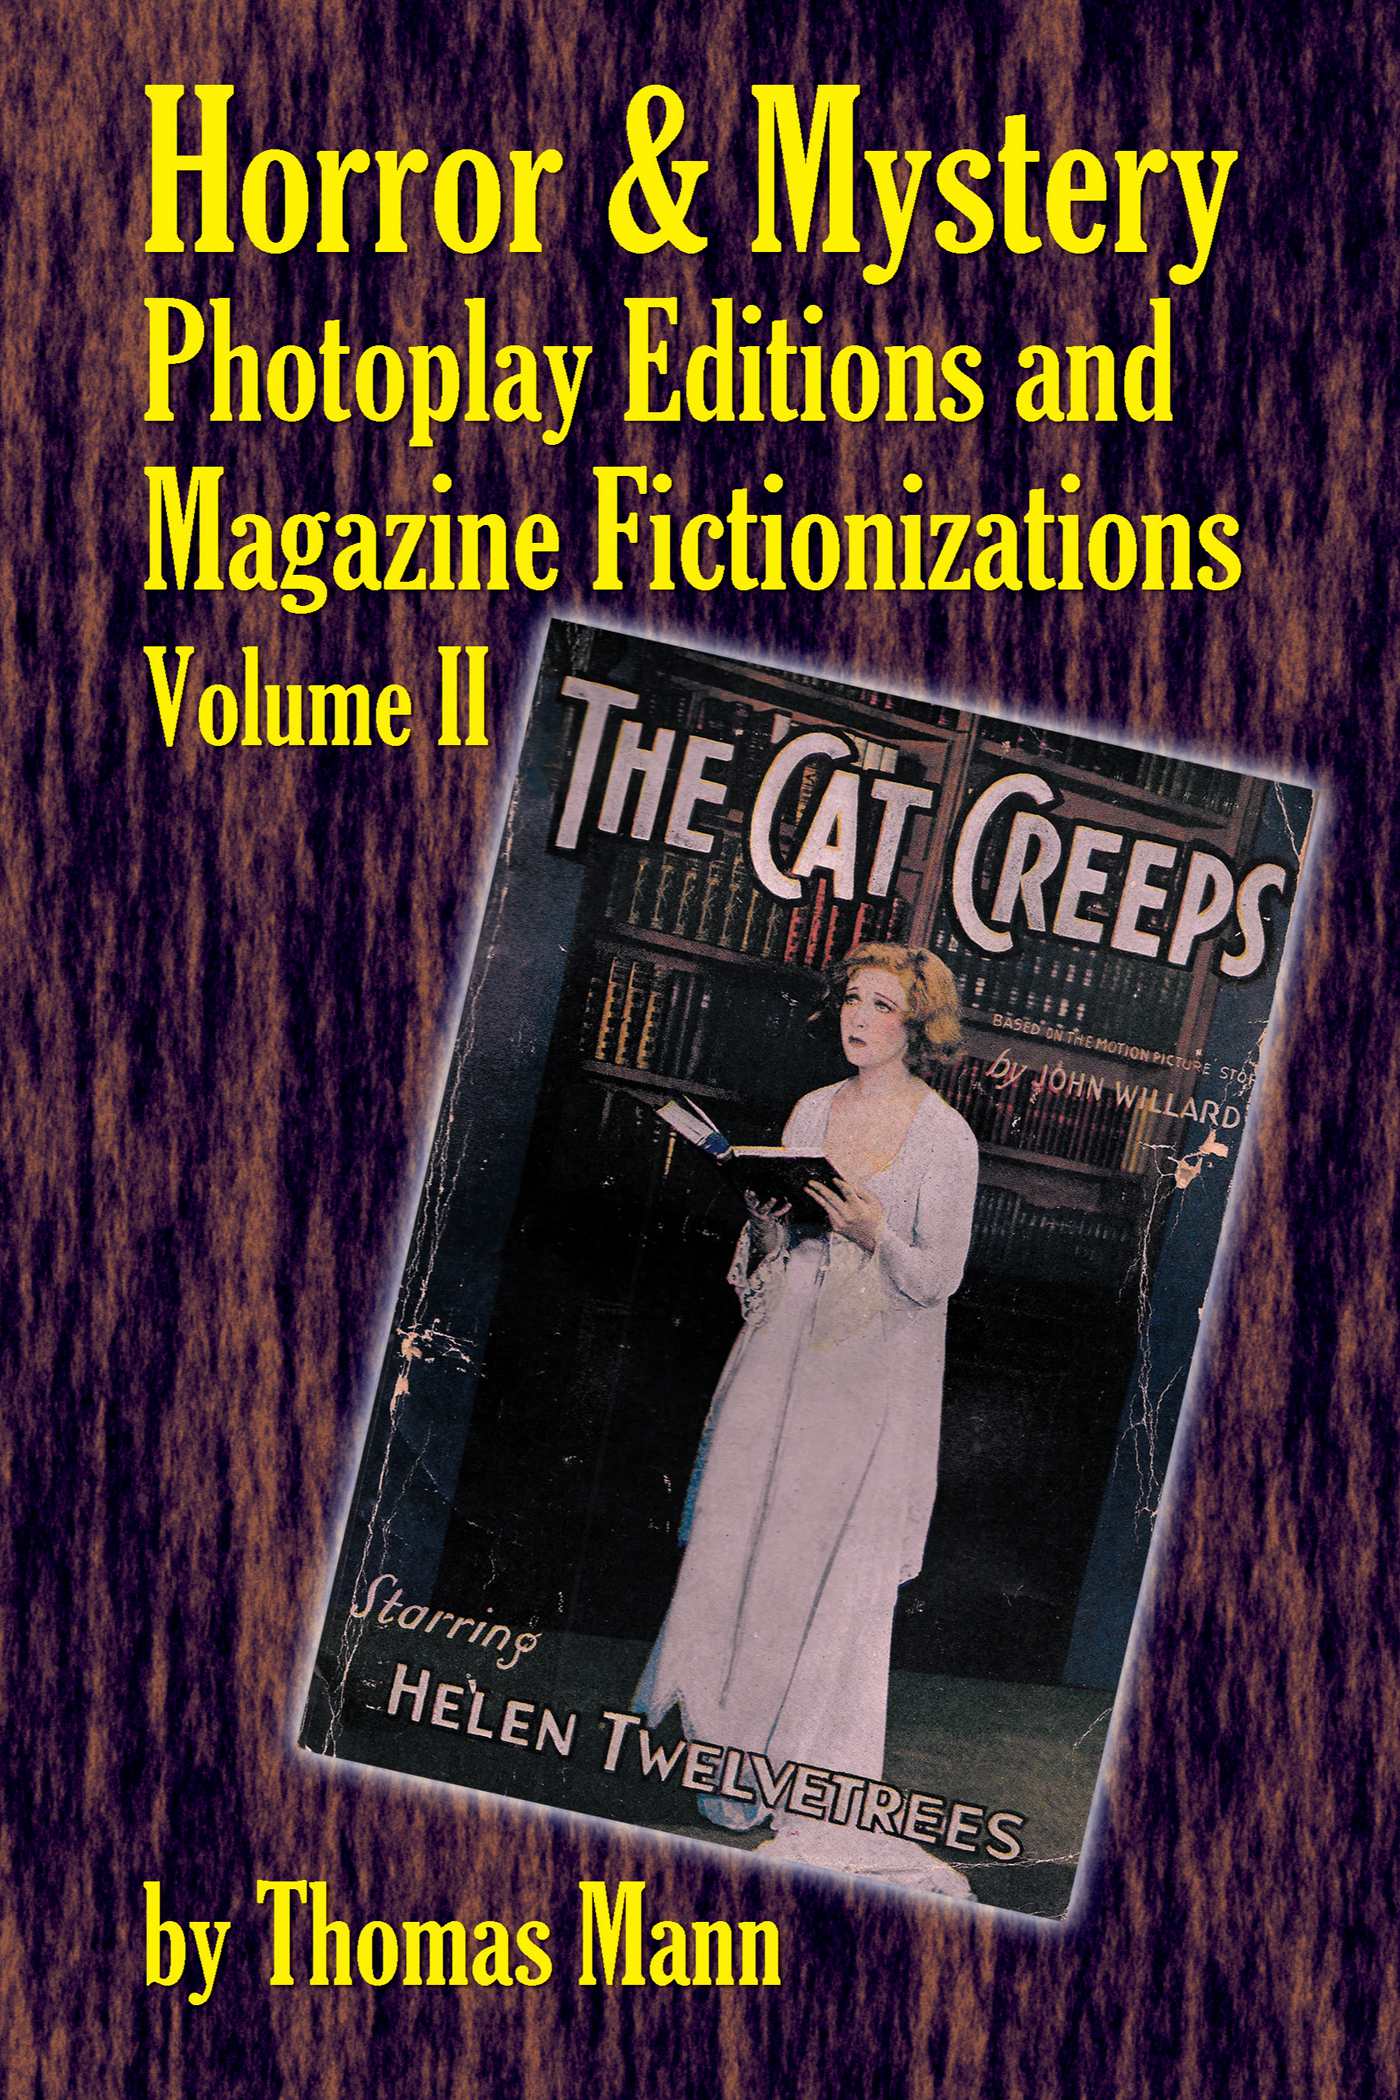 Horror and Mystery Photoplay Editions and Magazine Fictionizations, Volume II